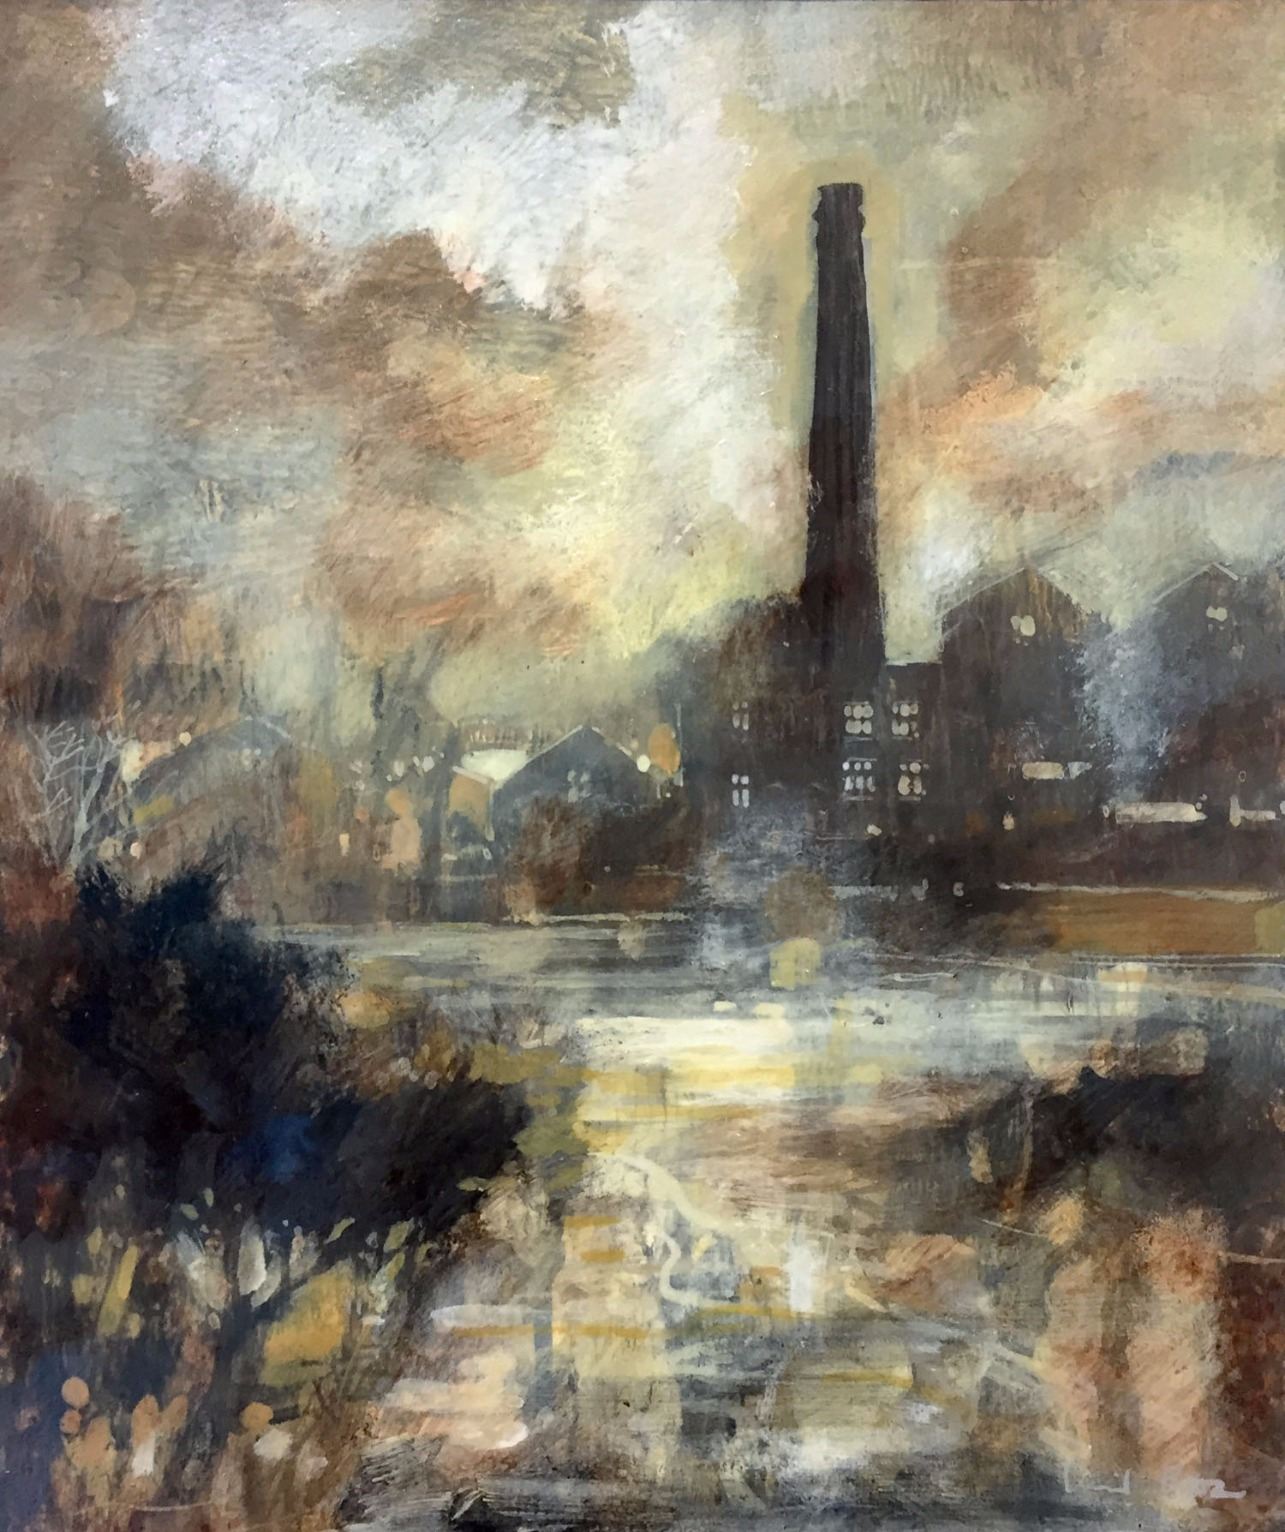 Standing Tall by David Bez, Water | Landscape | Northern | Industrial | Local